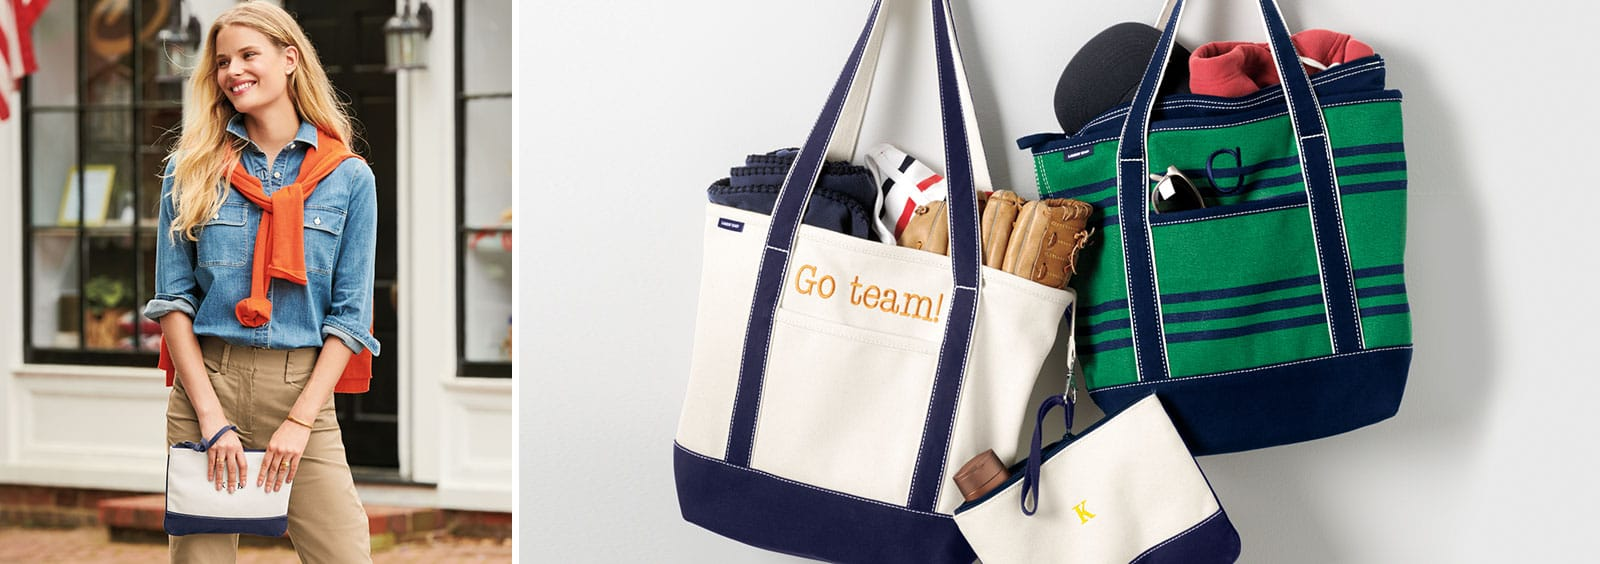 The Most Versatile Standard Tote Bag Sizes and Styles